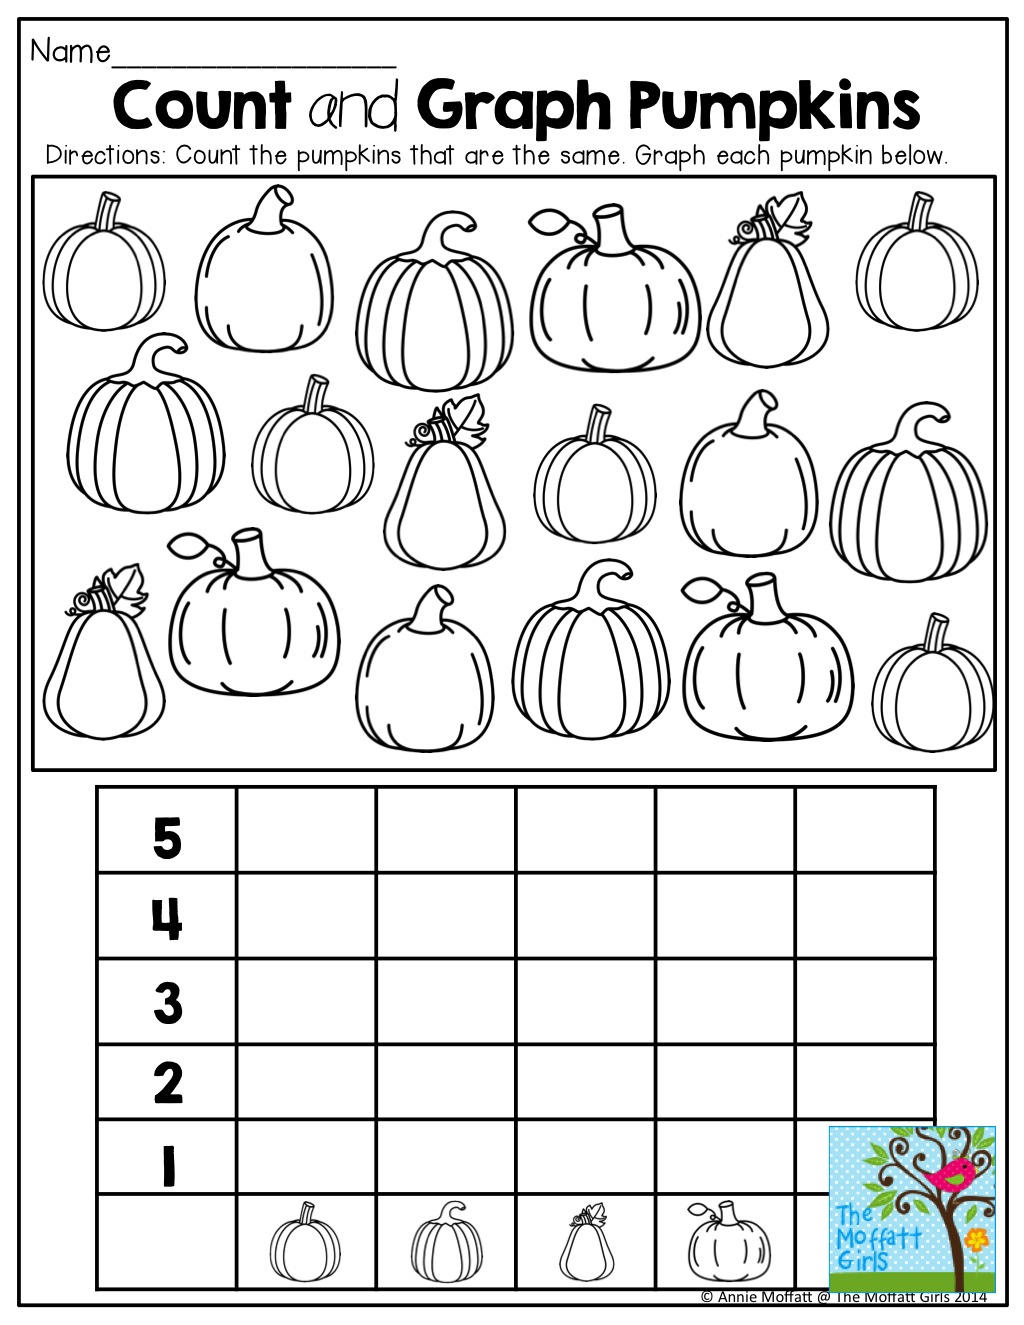 Graphing Pumpkins And Tons Of Other Fun Printables!